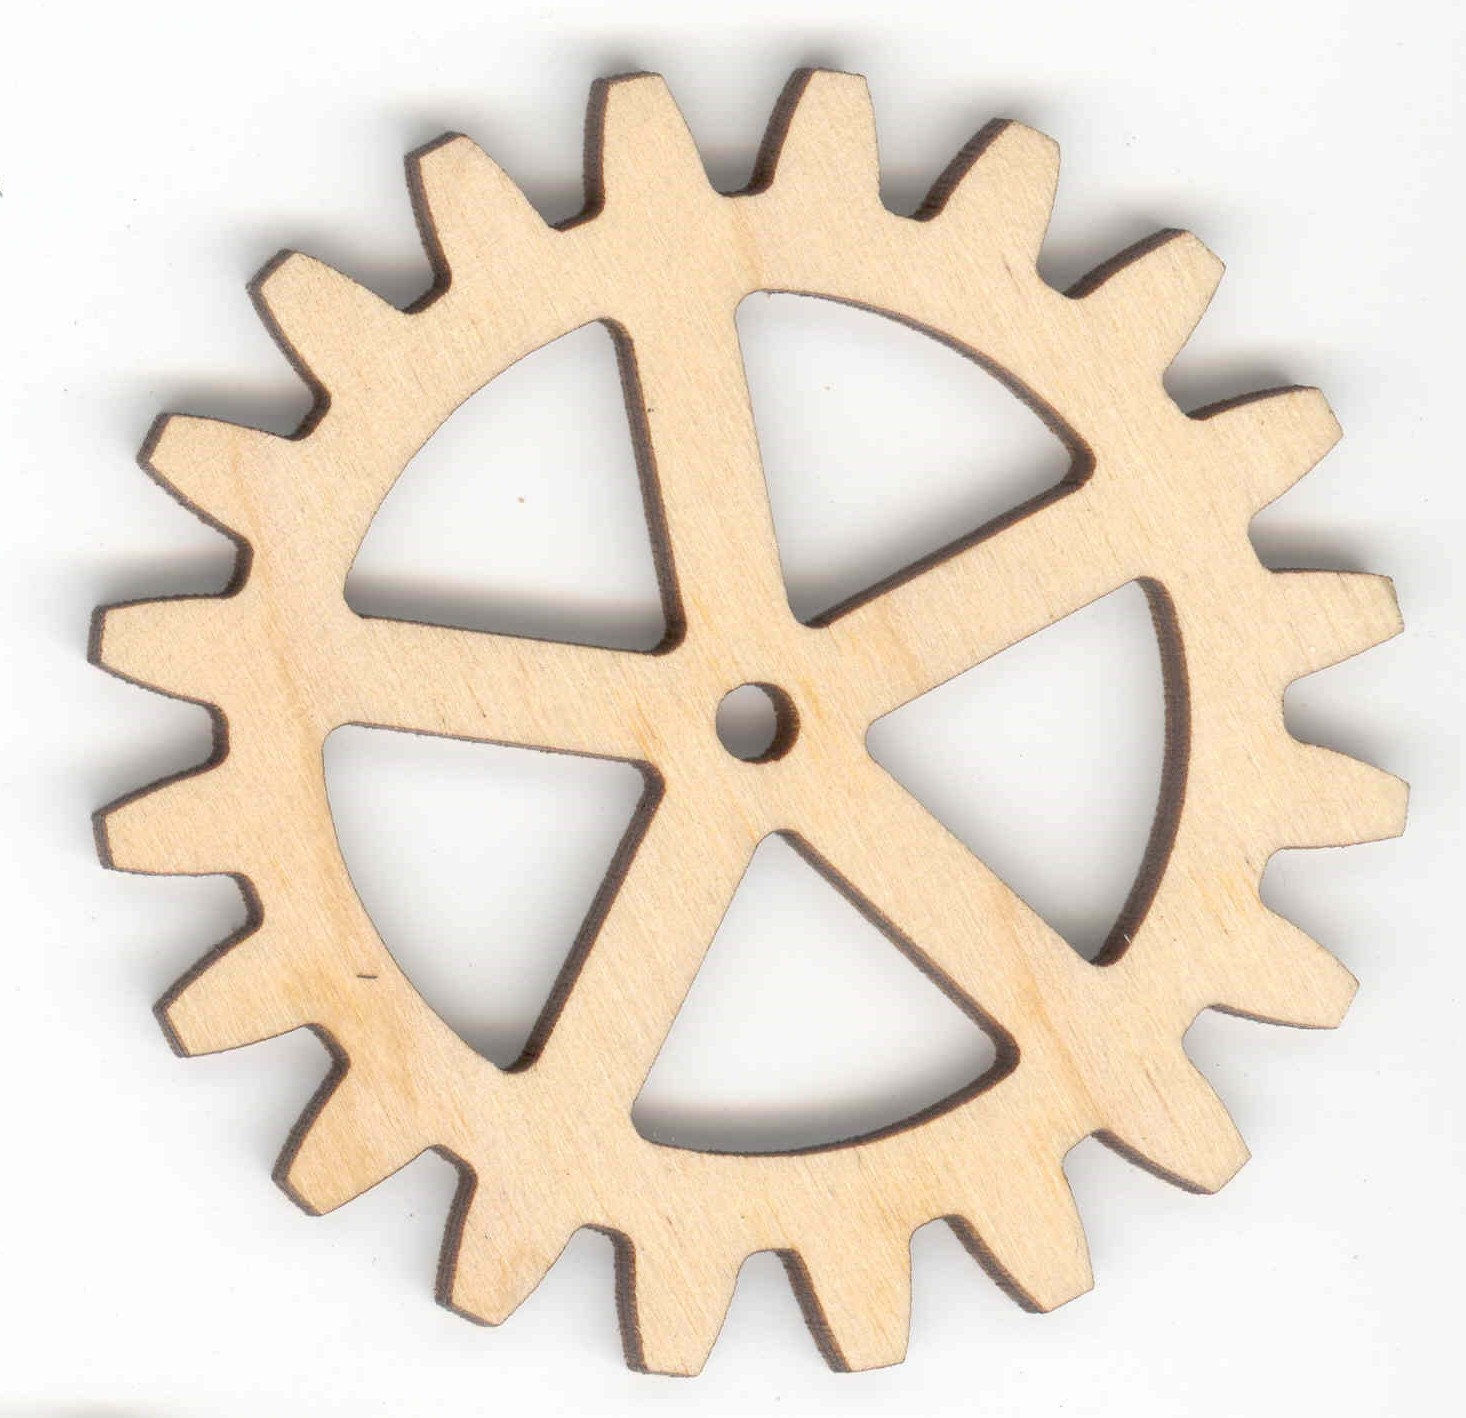 2 2 Diameter Wood Gear/Sprocket with Spokes